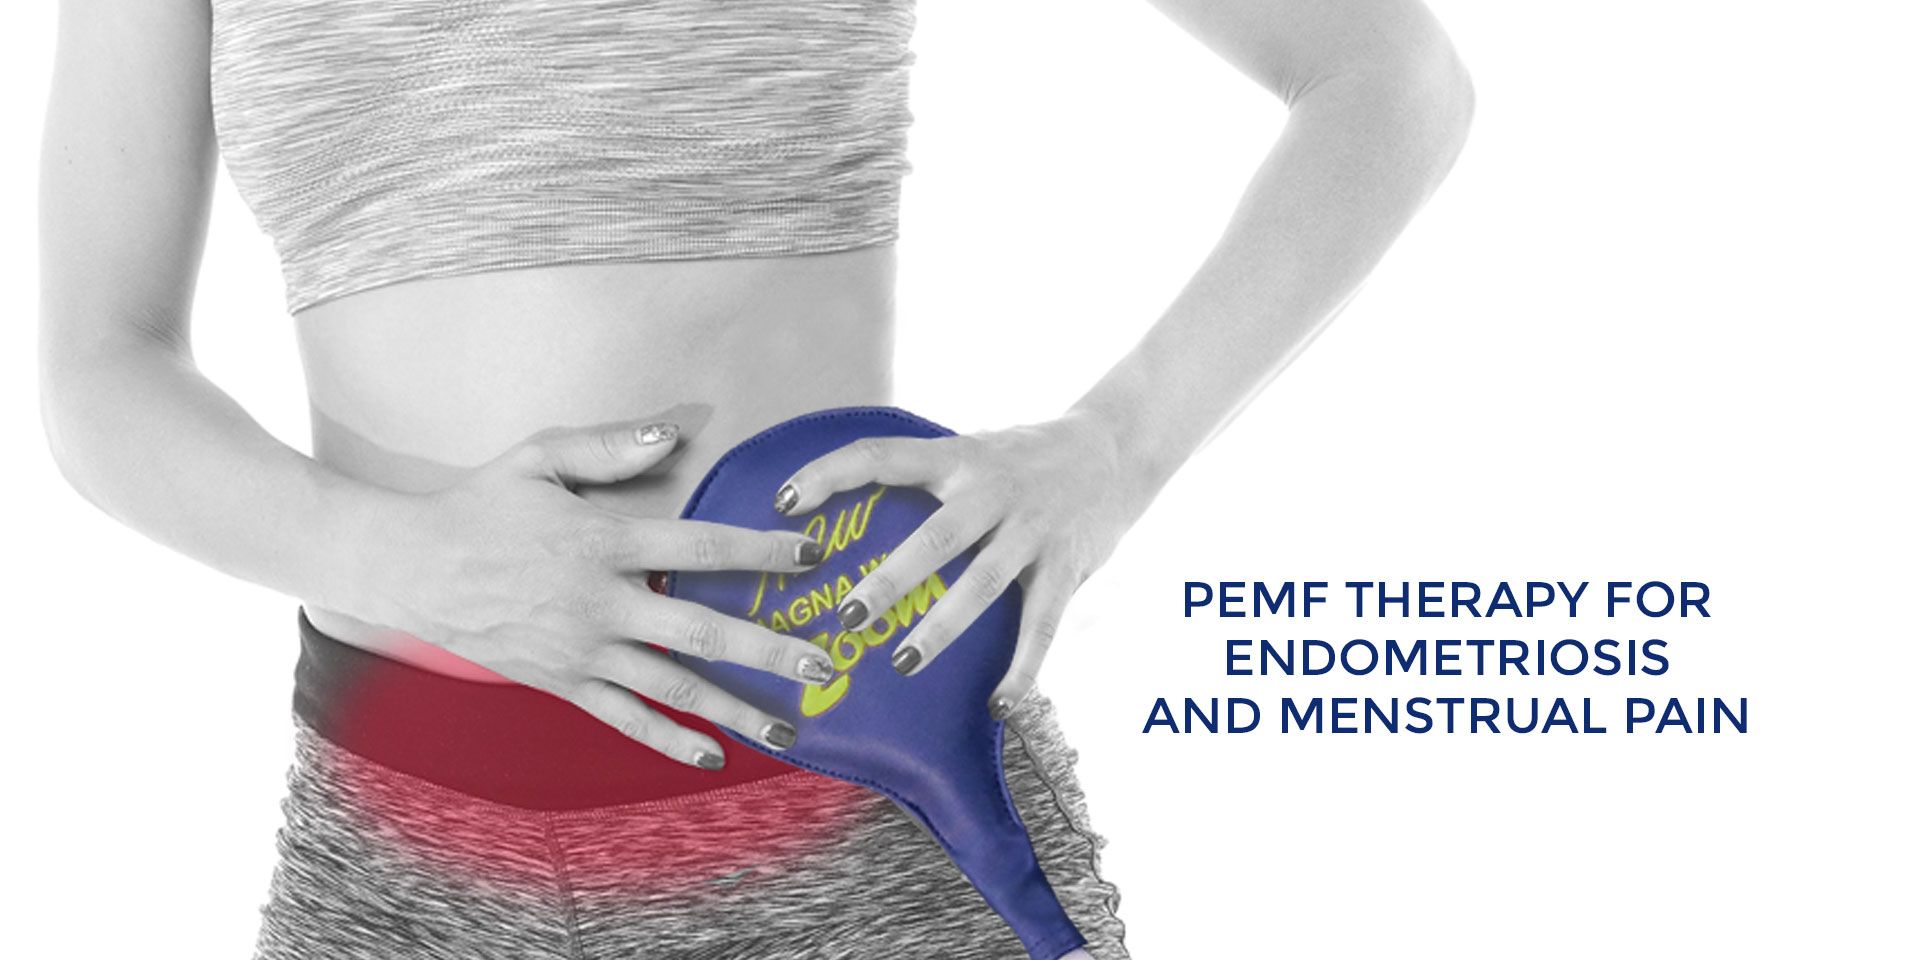 PEMF Therapy for Endometriosis and Menstrual Pain